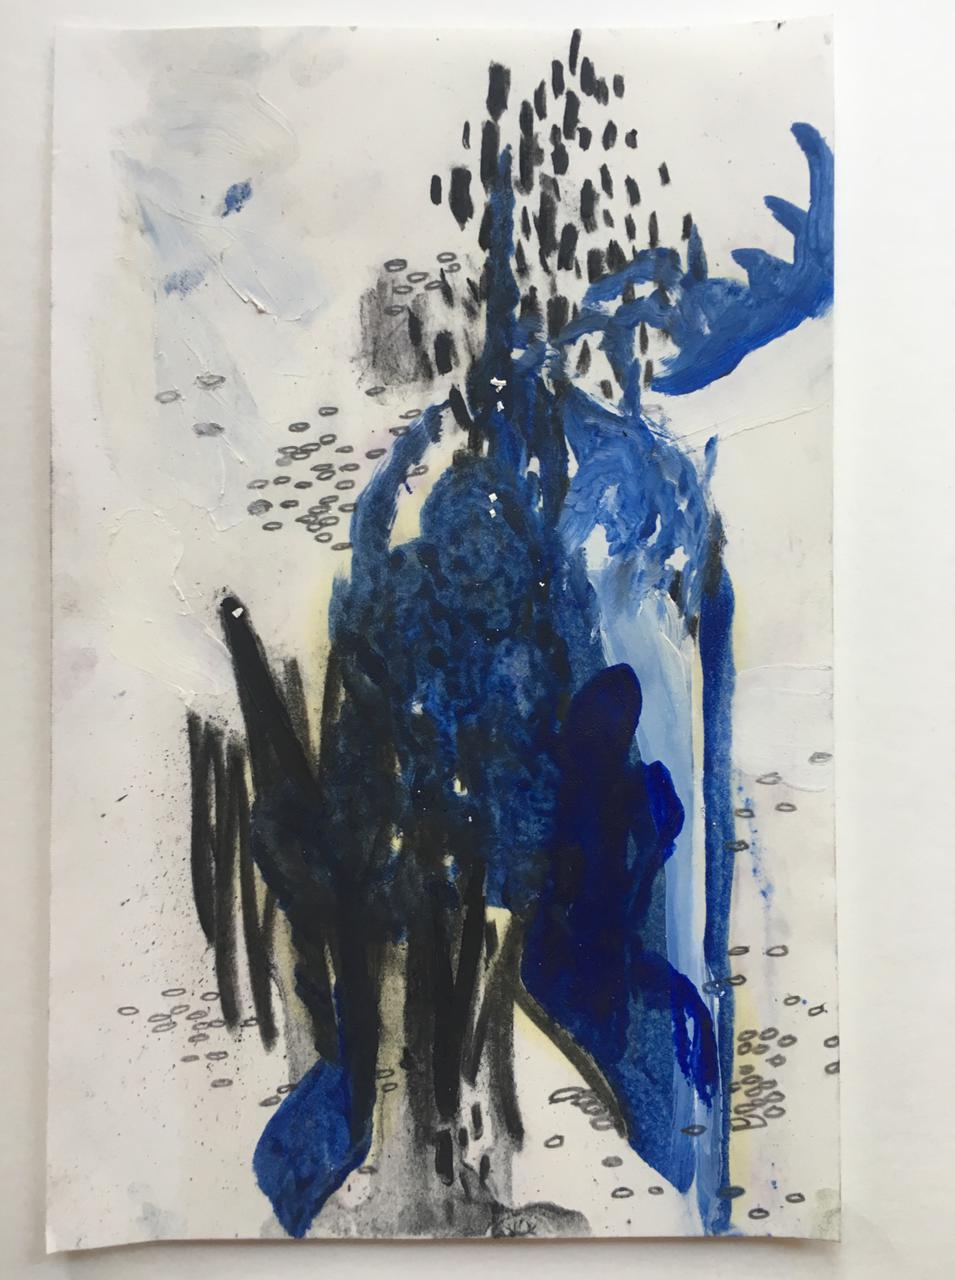 Jessica Fertonani Cooke, Deer 2, 14 x 22 cm, acrylic, oil, charcoal and pencil on paper